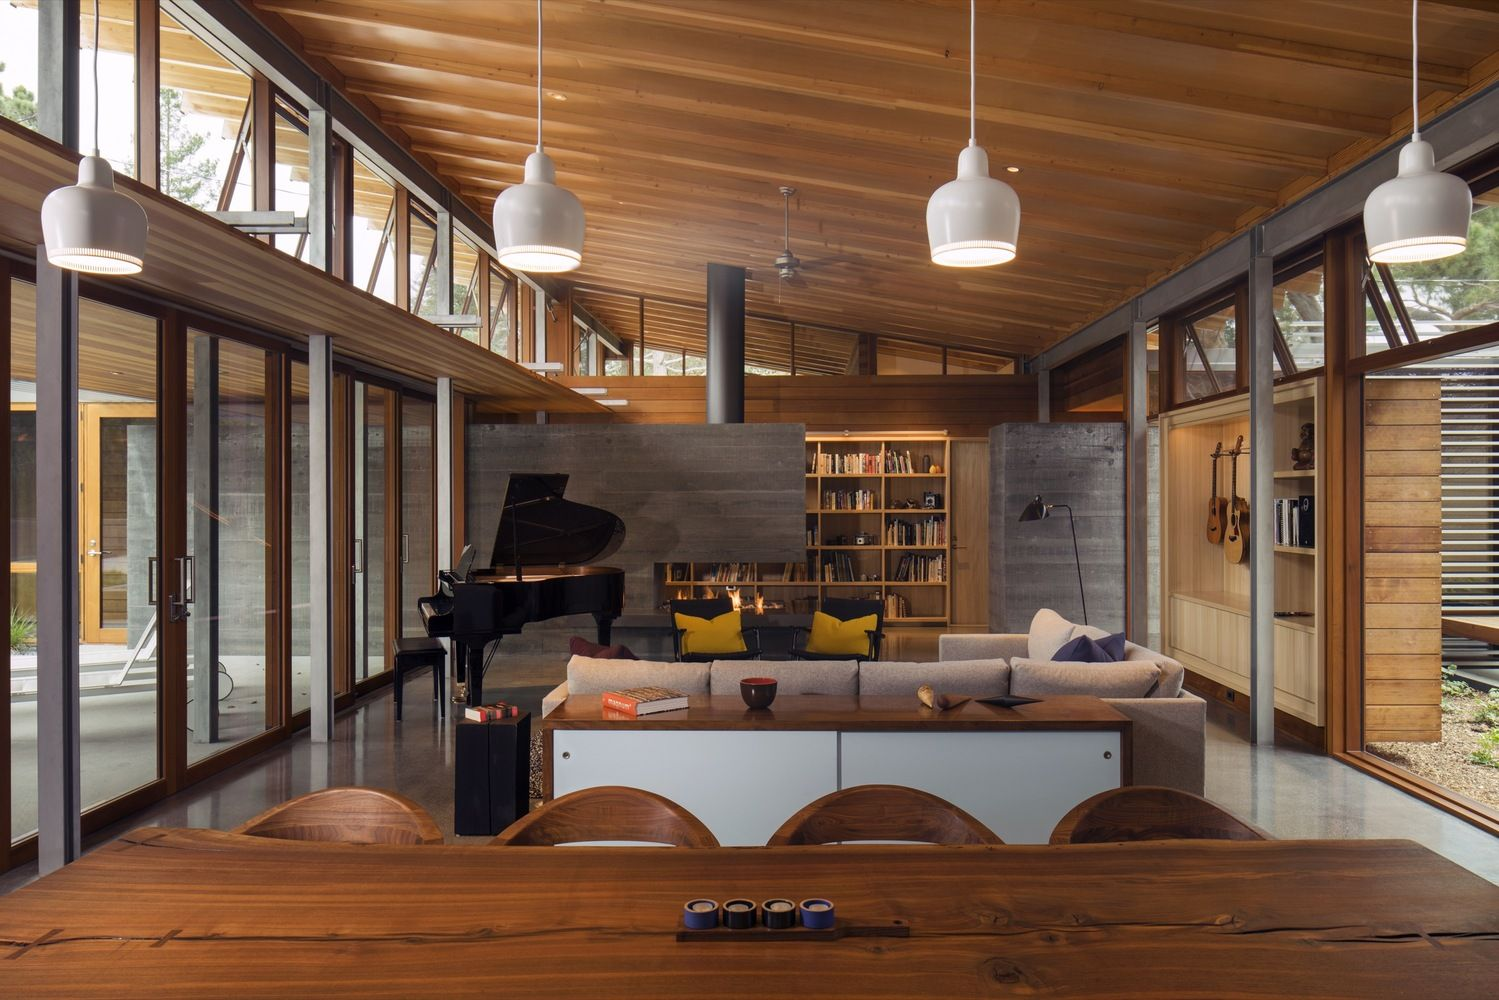 25 of the most beautiful california houses and their stories. Black Bedroom Furniture Sets. Home Design Ideas